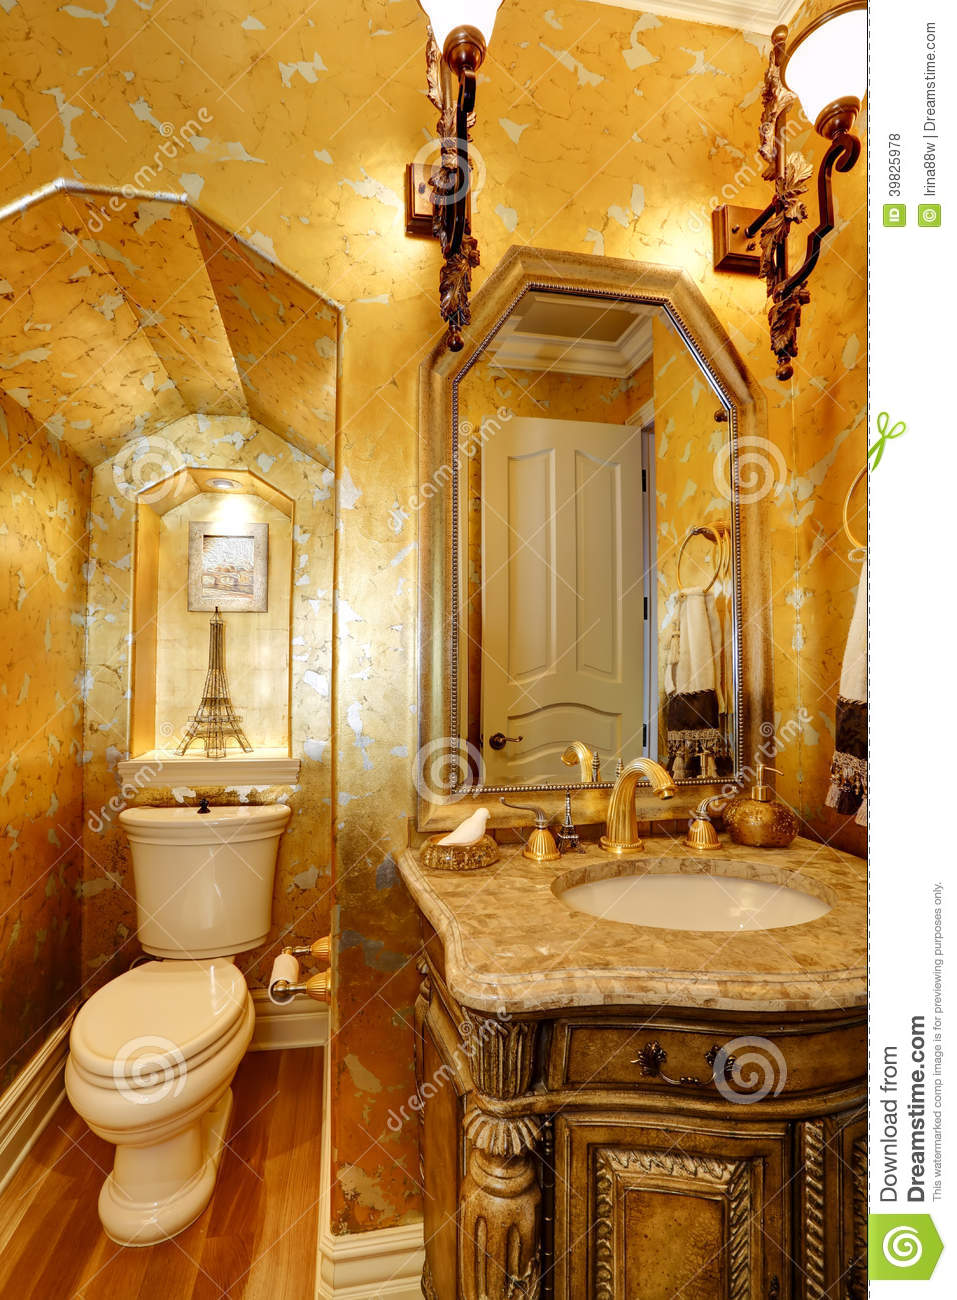 Salle de bains antique d 39 or de style photo stock image for Salle de bain style antique